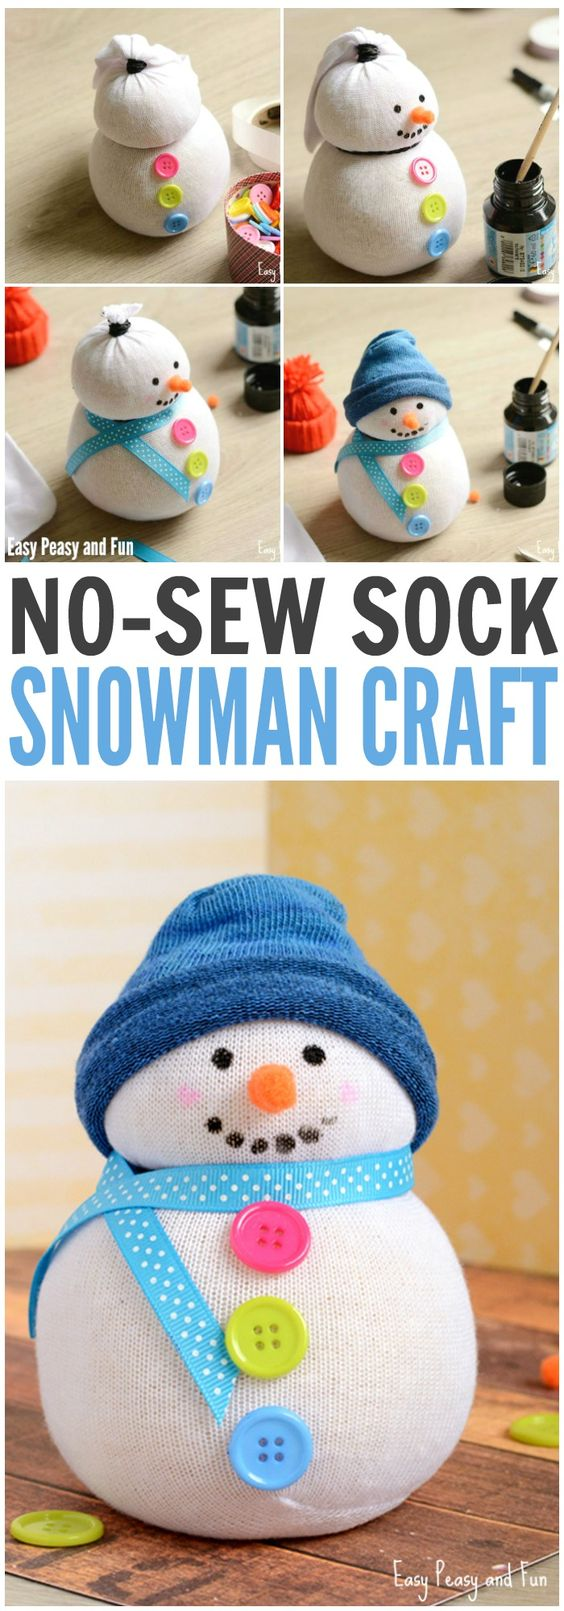 No-Sew Sock Snowman Craft.